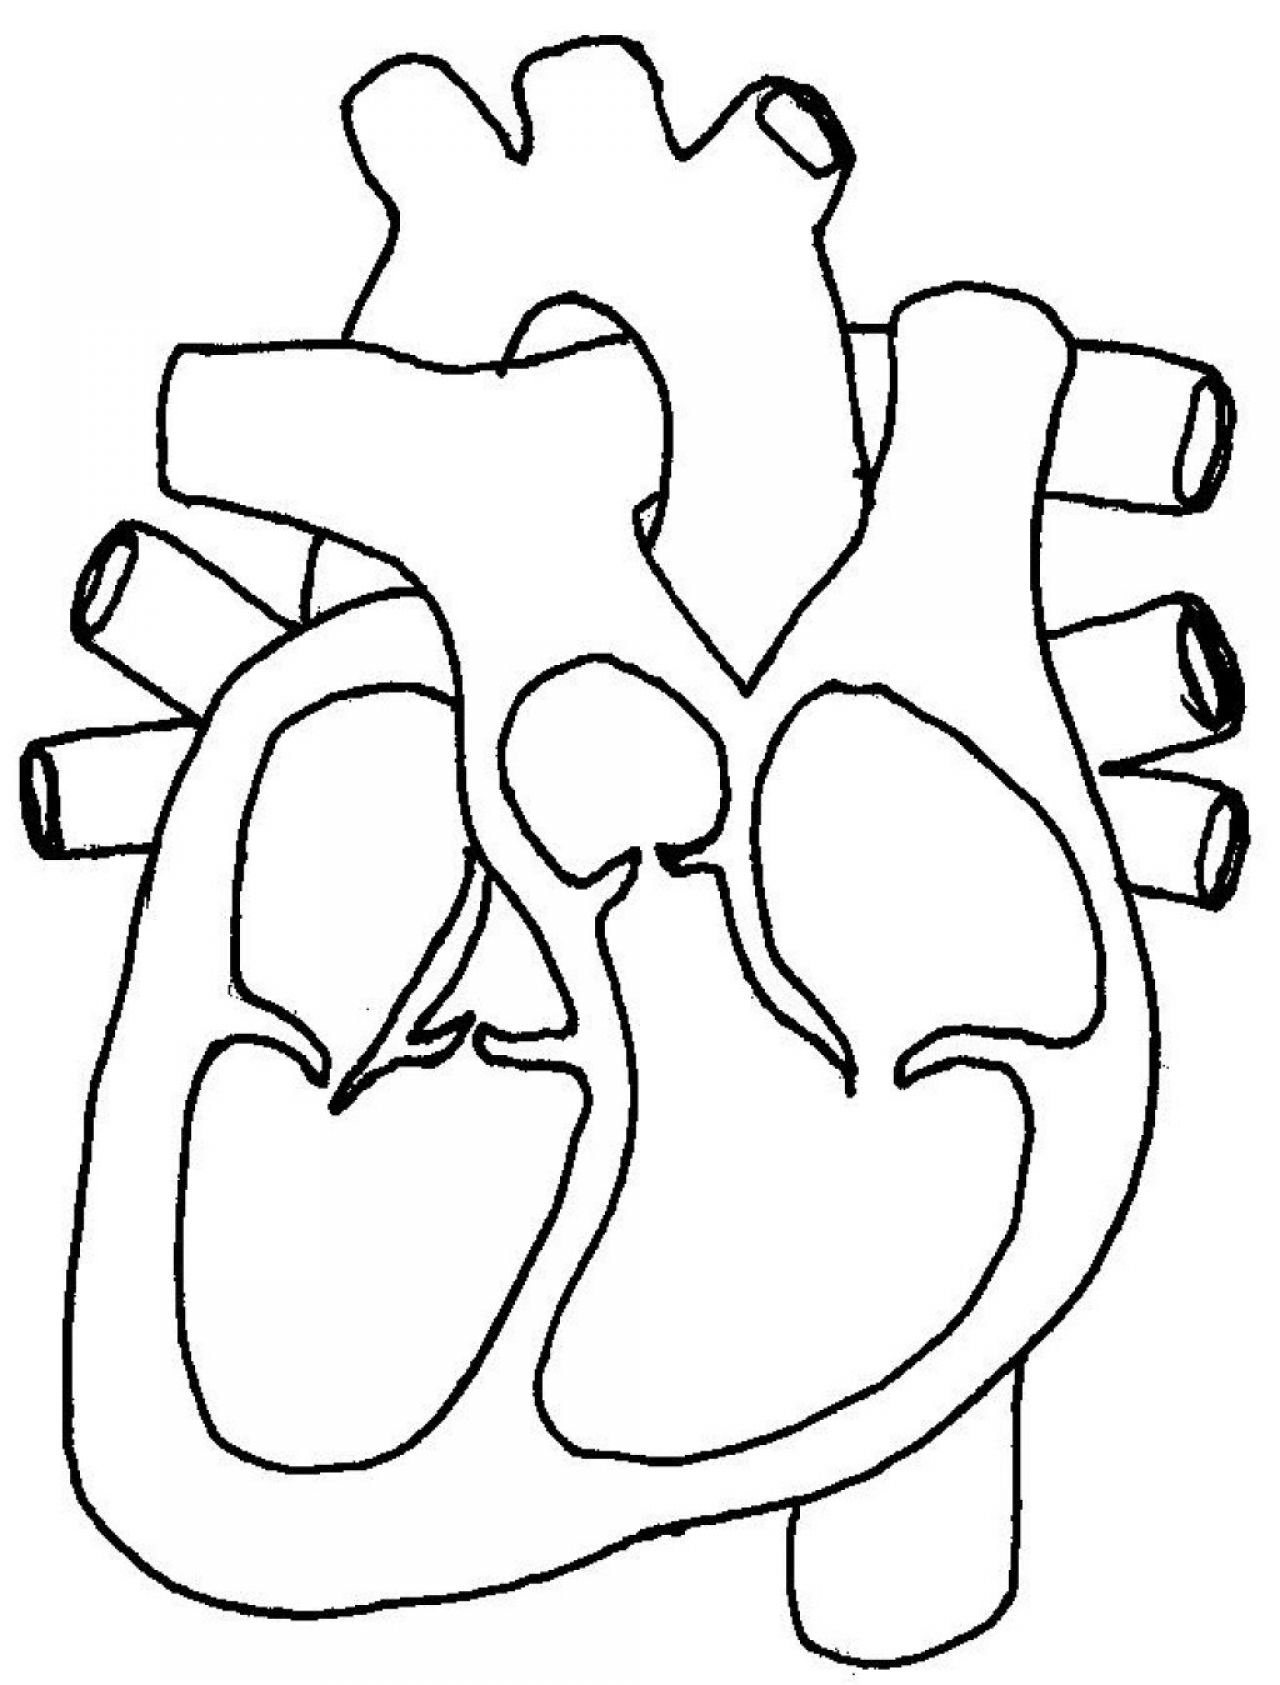 Blank Diagram Of The Heart